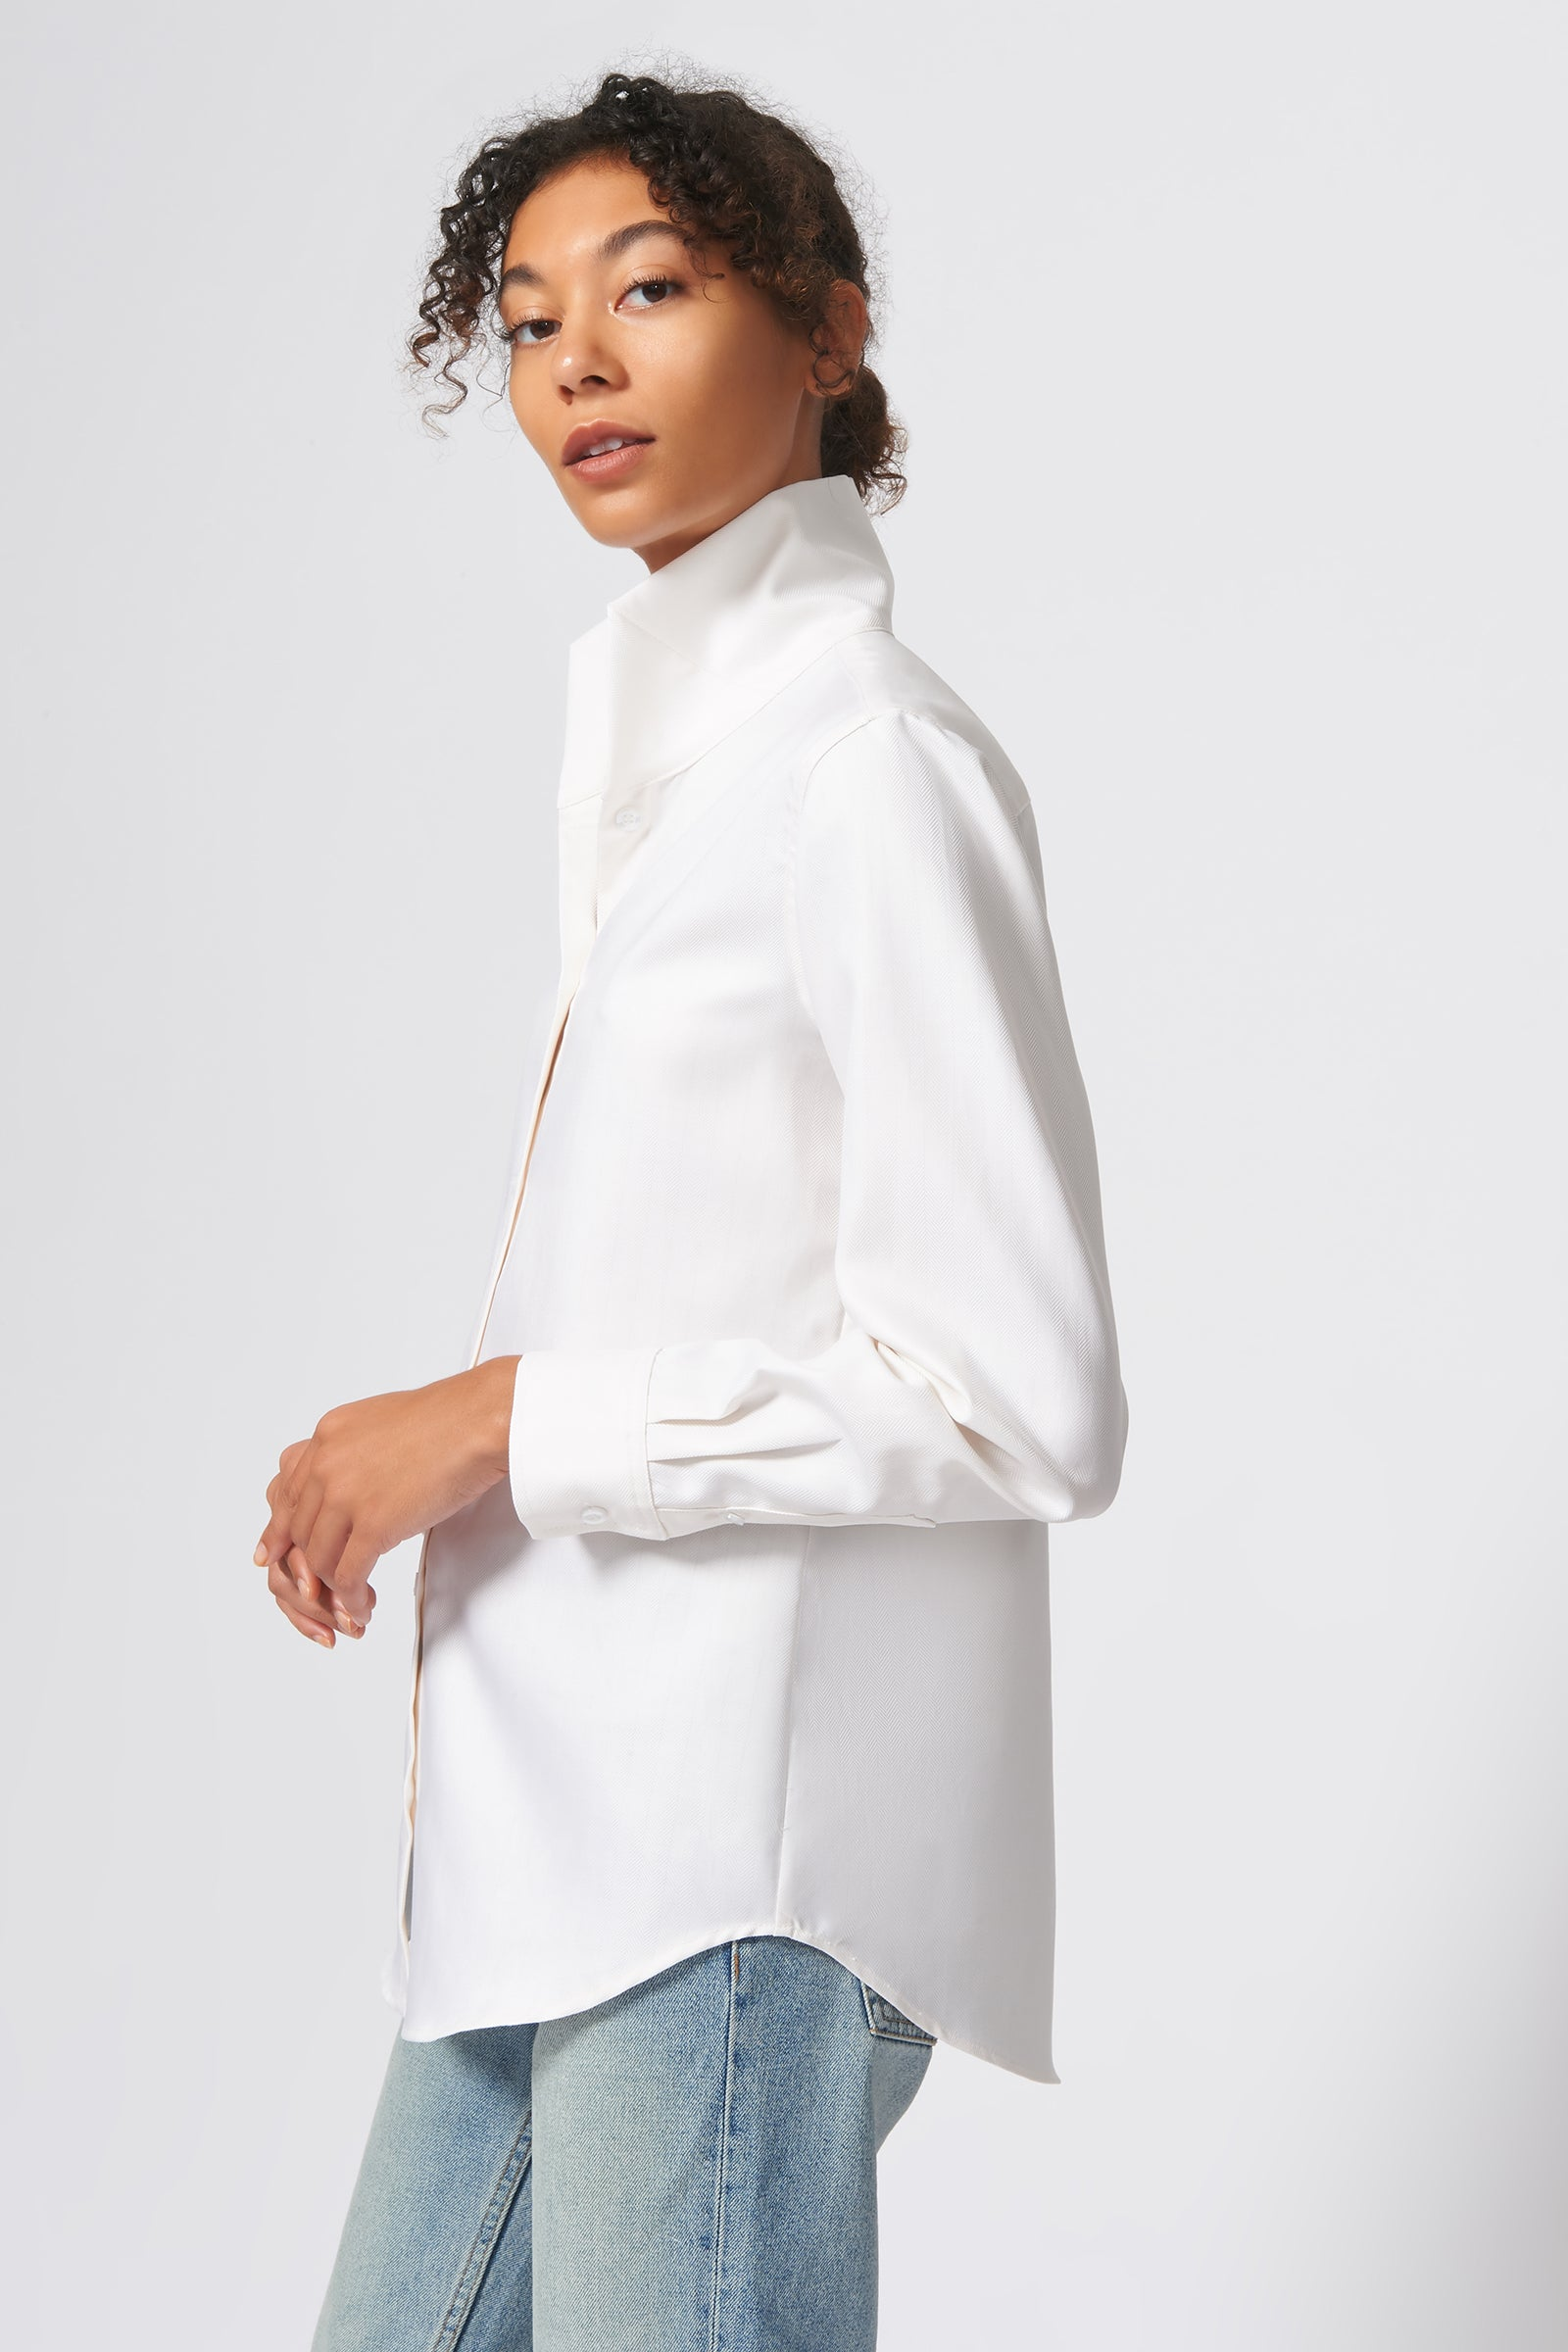 Kal Rieman Ginna Box Pleat Shirt in Ivory Fine Herringbone on Model Side View